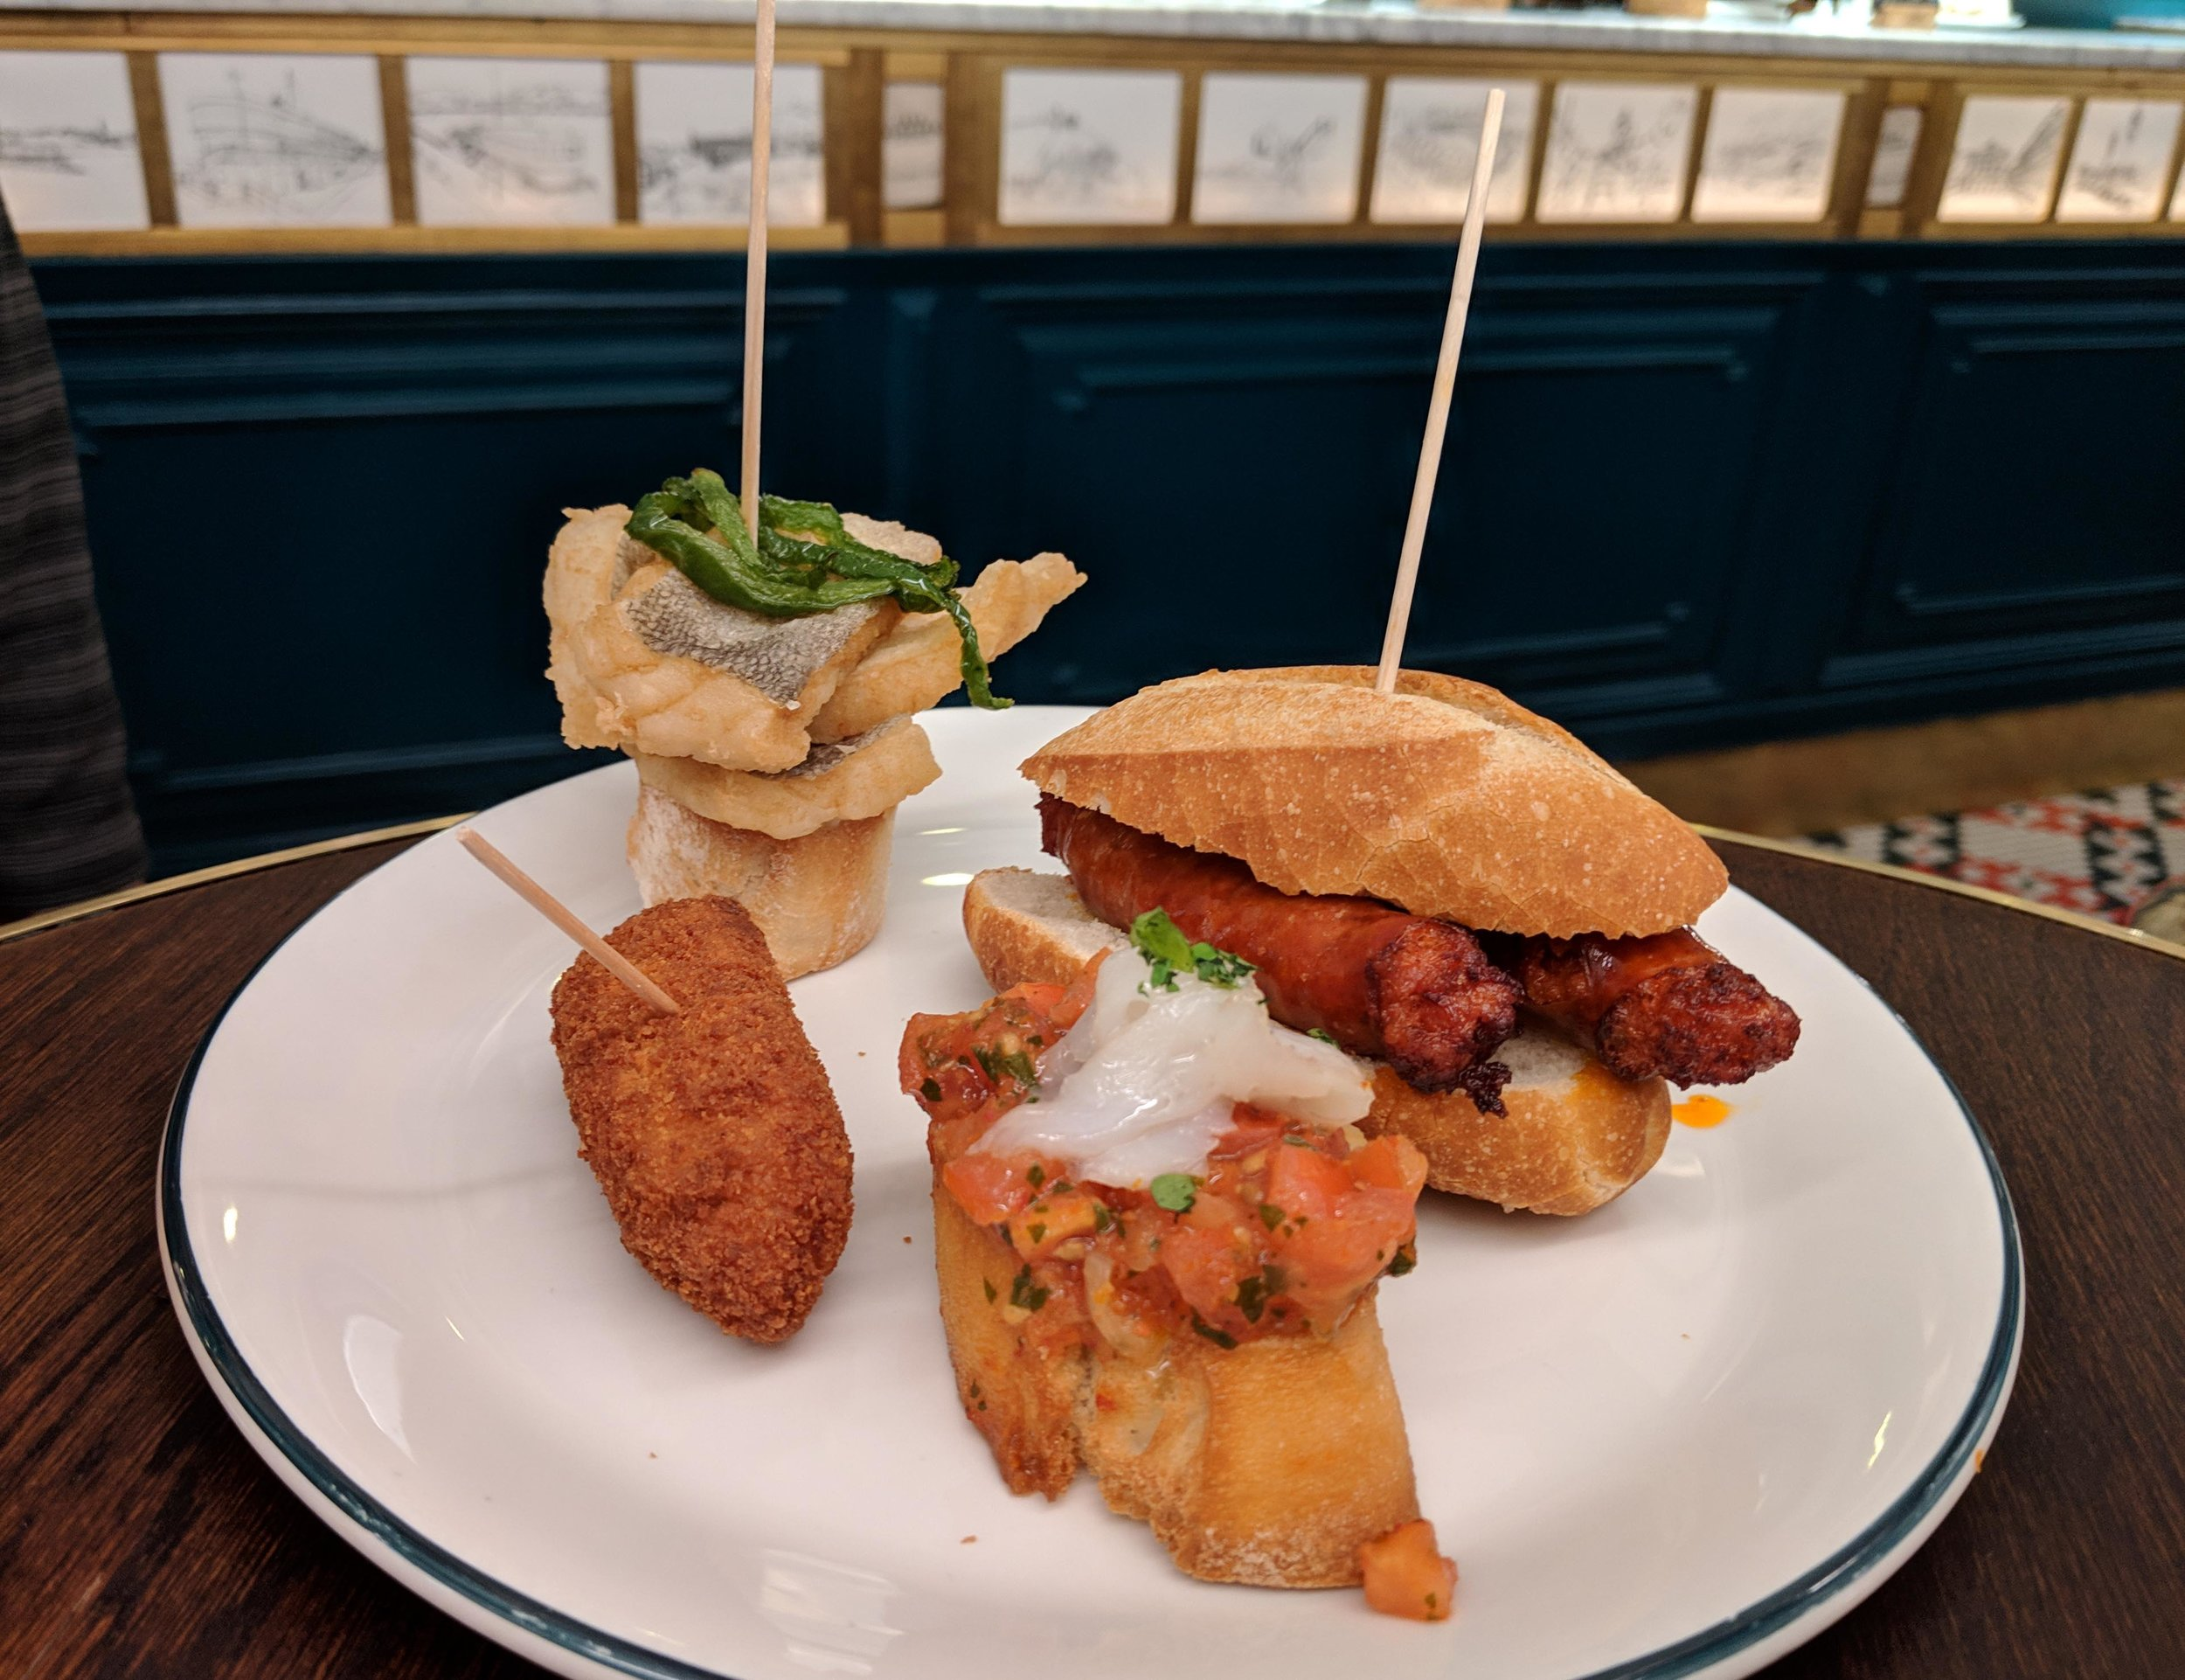 Just a little sampling of the pintxos tried